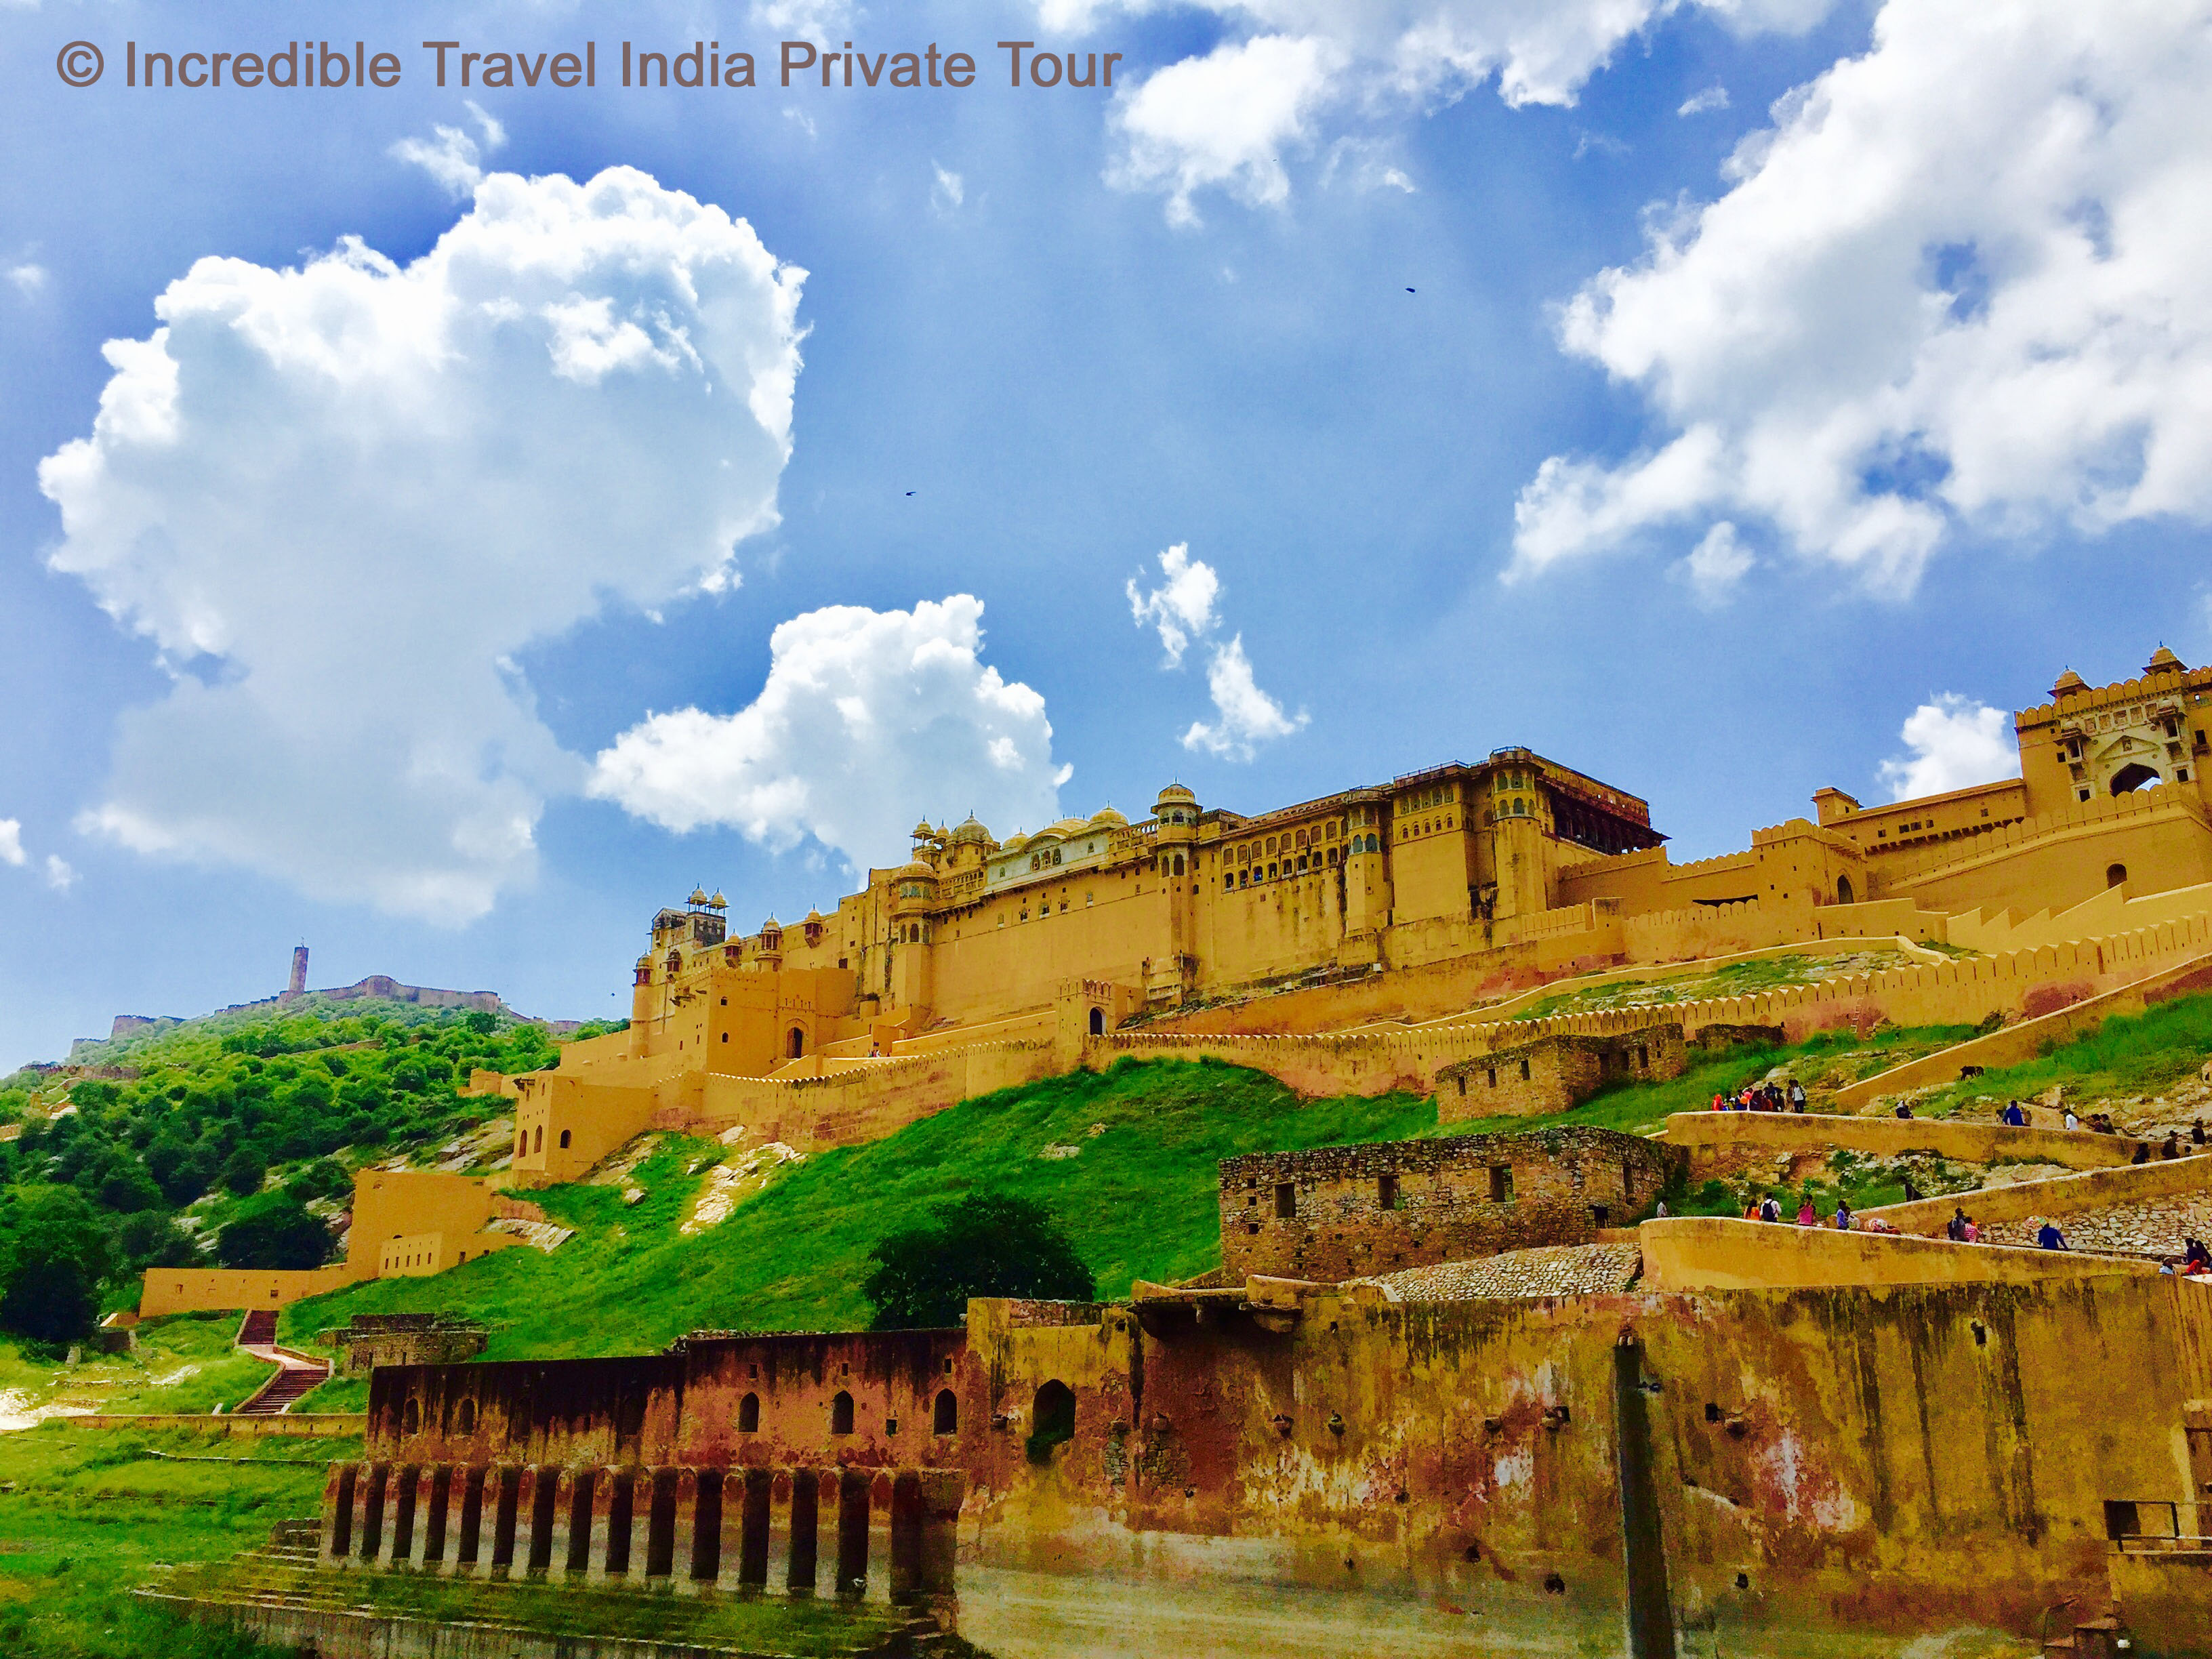 ©_Incredible_Travel_India_Private_Tour_amer